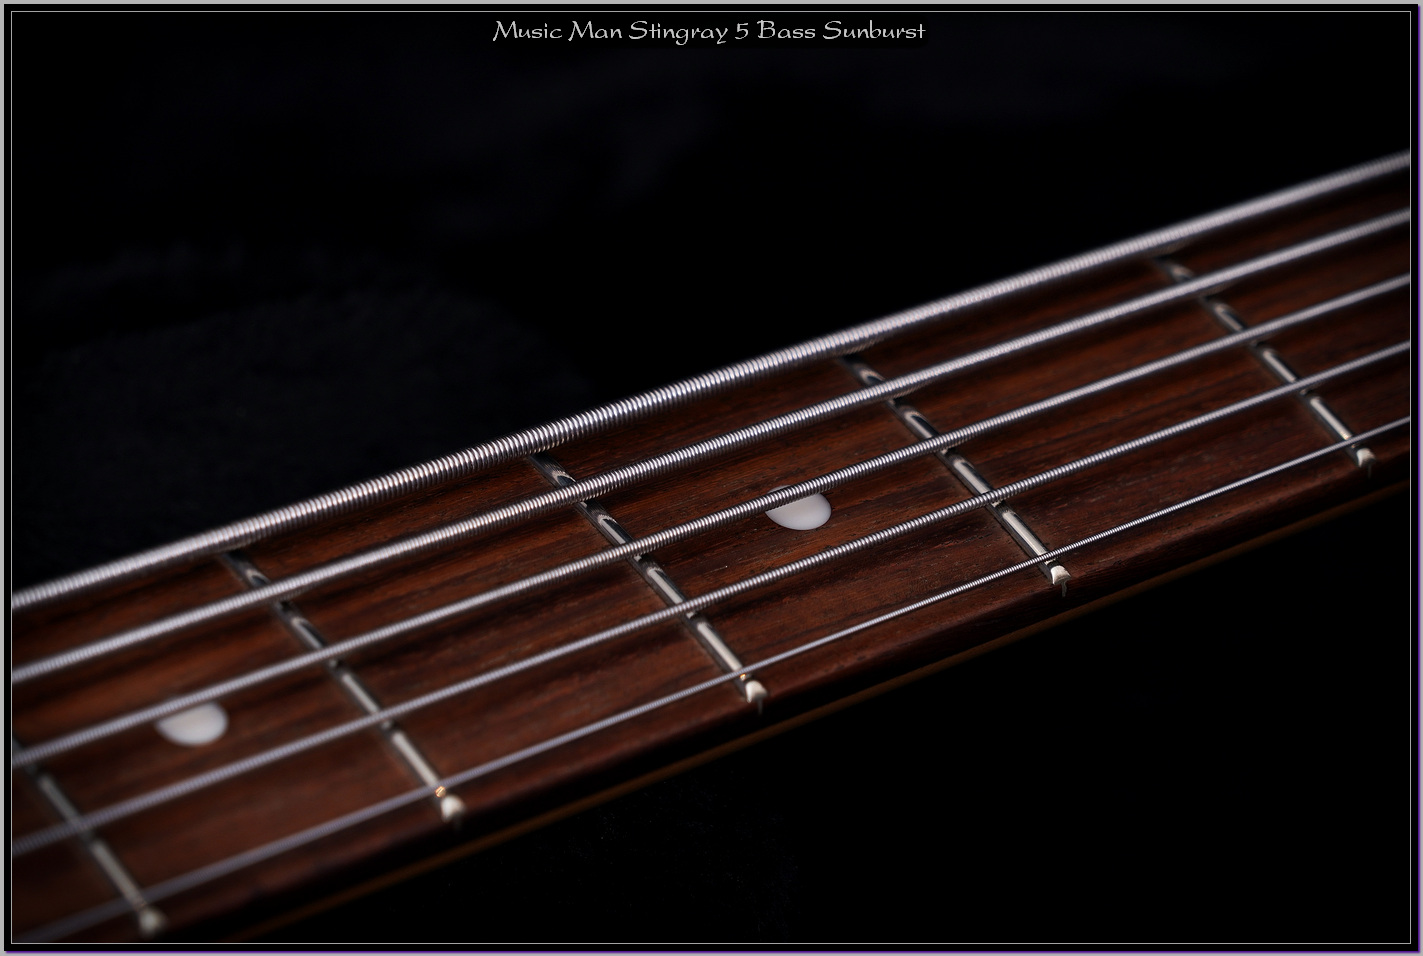 Music Man Stingray 5 Bass Sunburst 03b_xupd.jpg